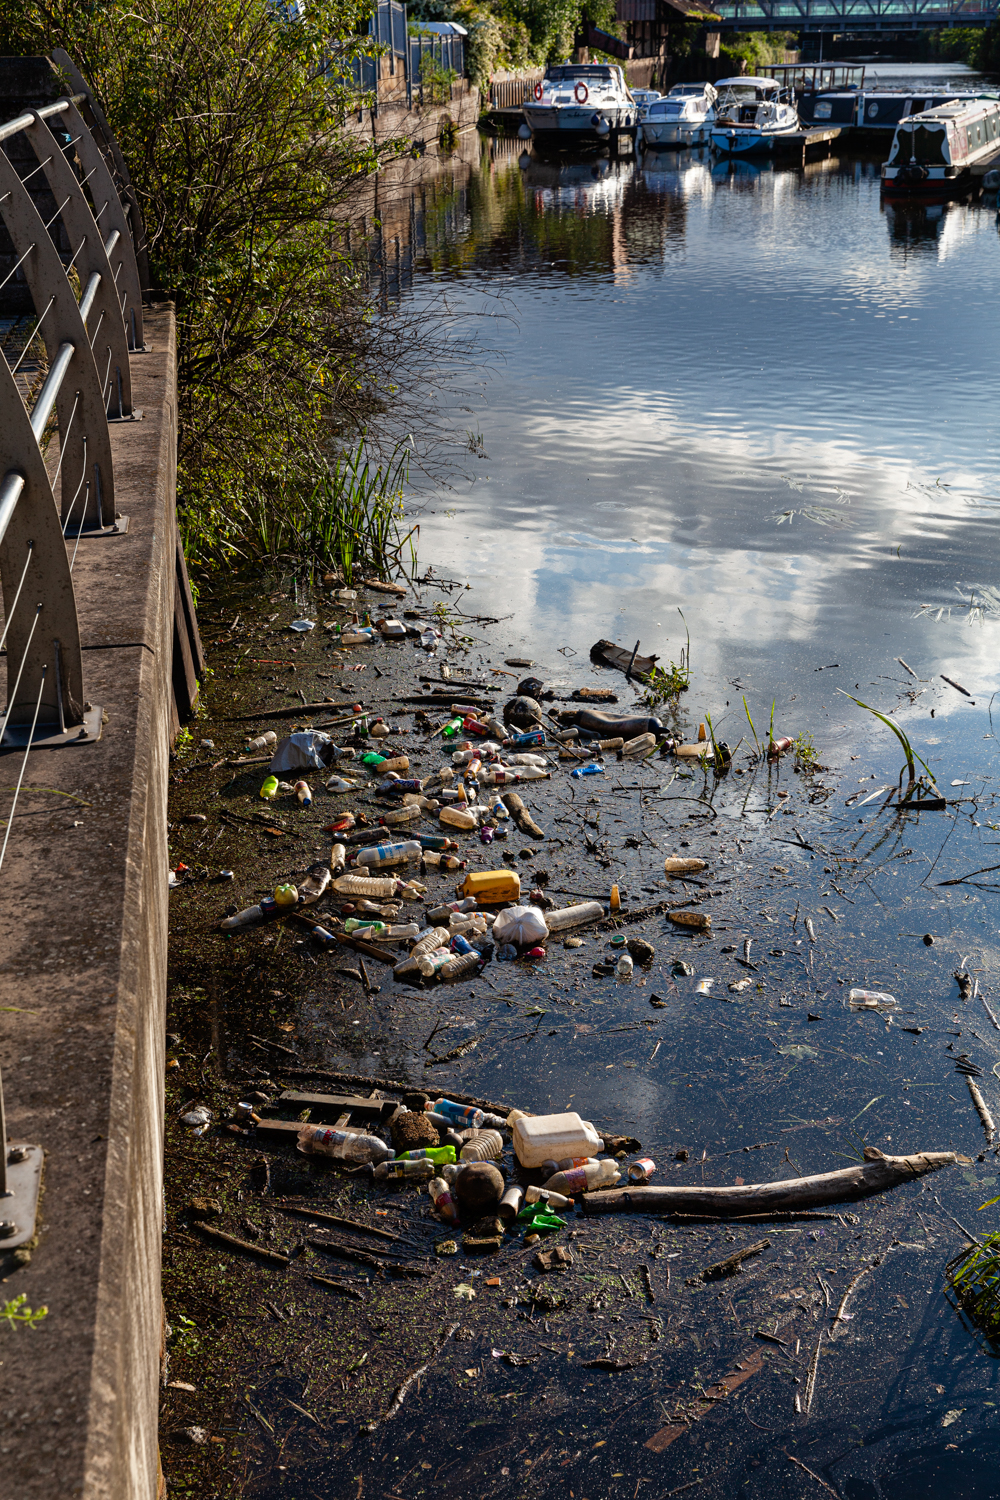 Some of the rubbish in the canal in Doncaster.